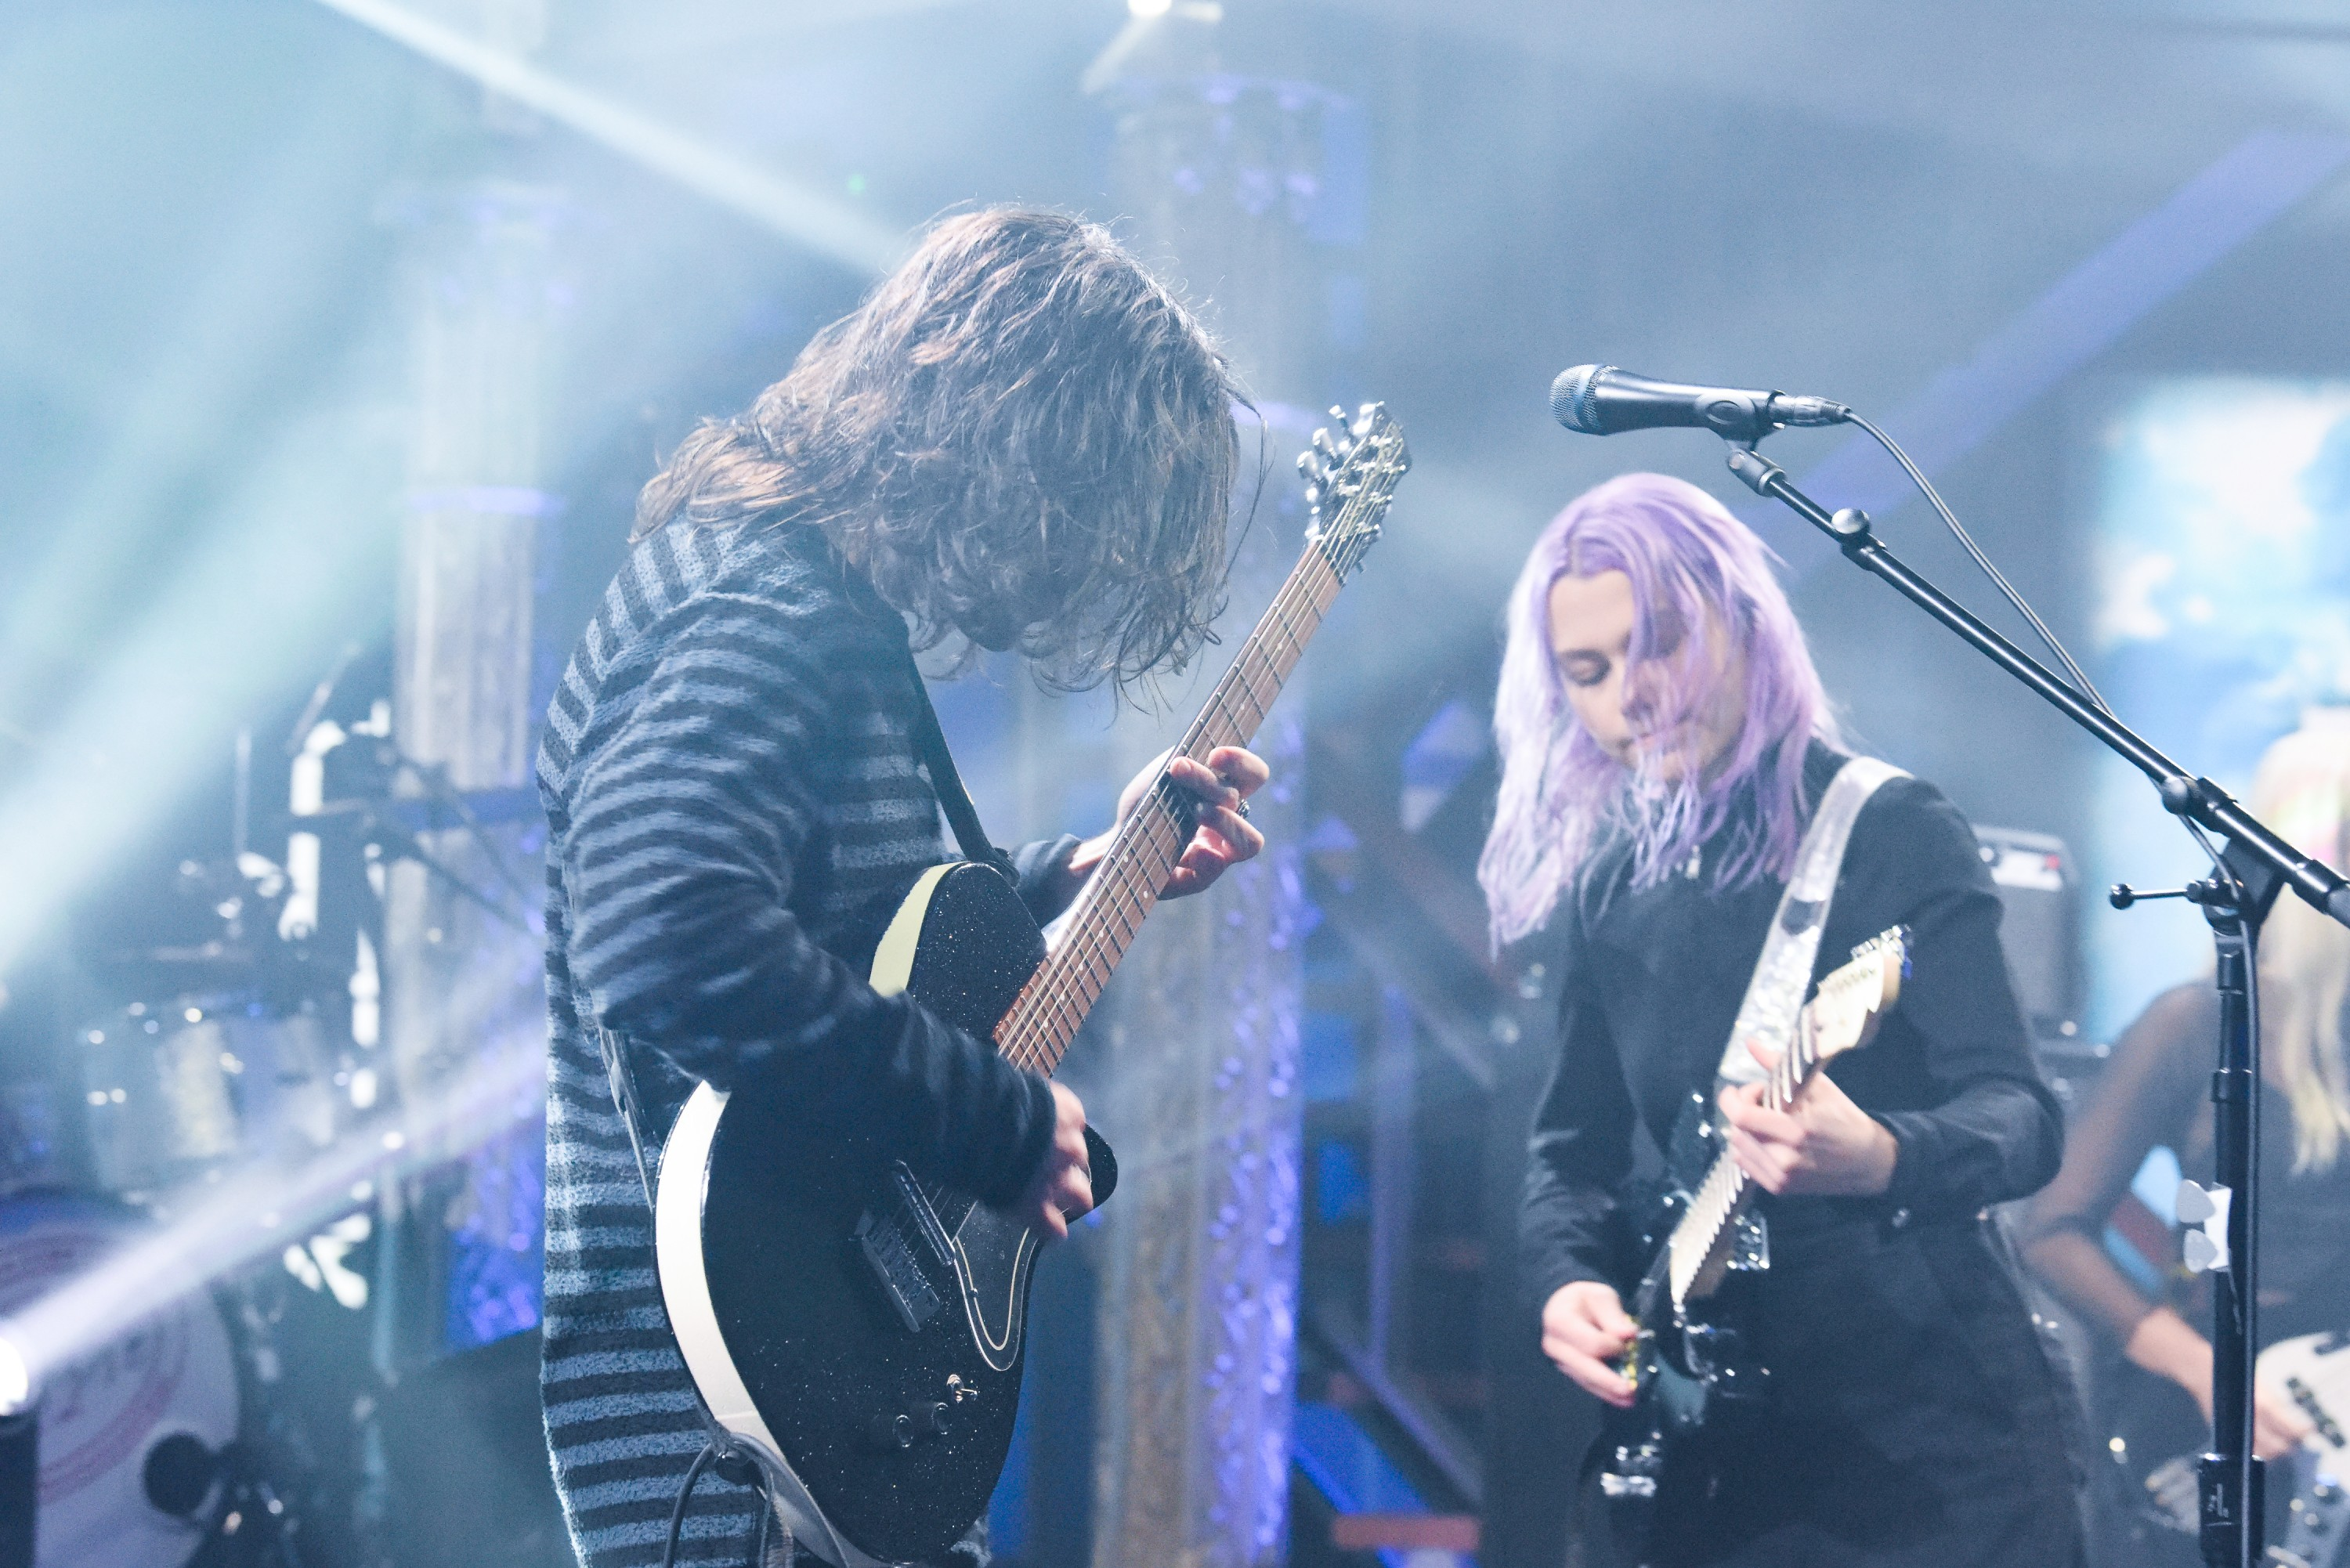 phoebe-bridgers-conor-oberst-cover-the-replacements-at-better-oblivion-community-center-performance-watch